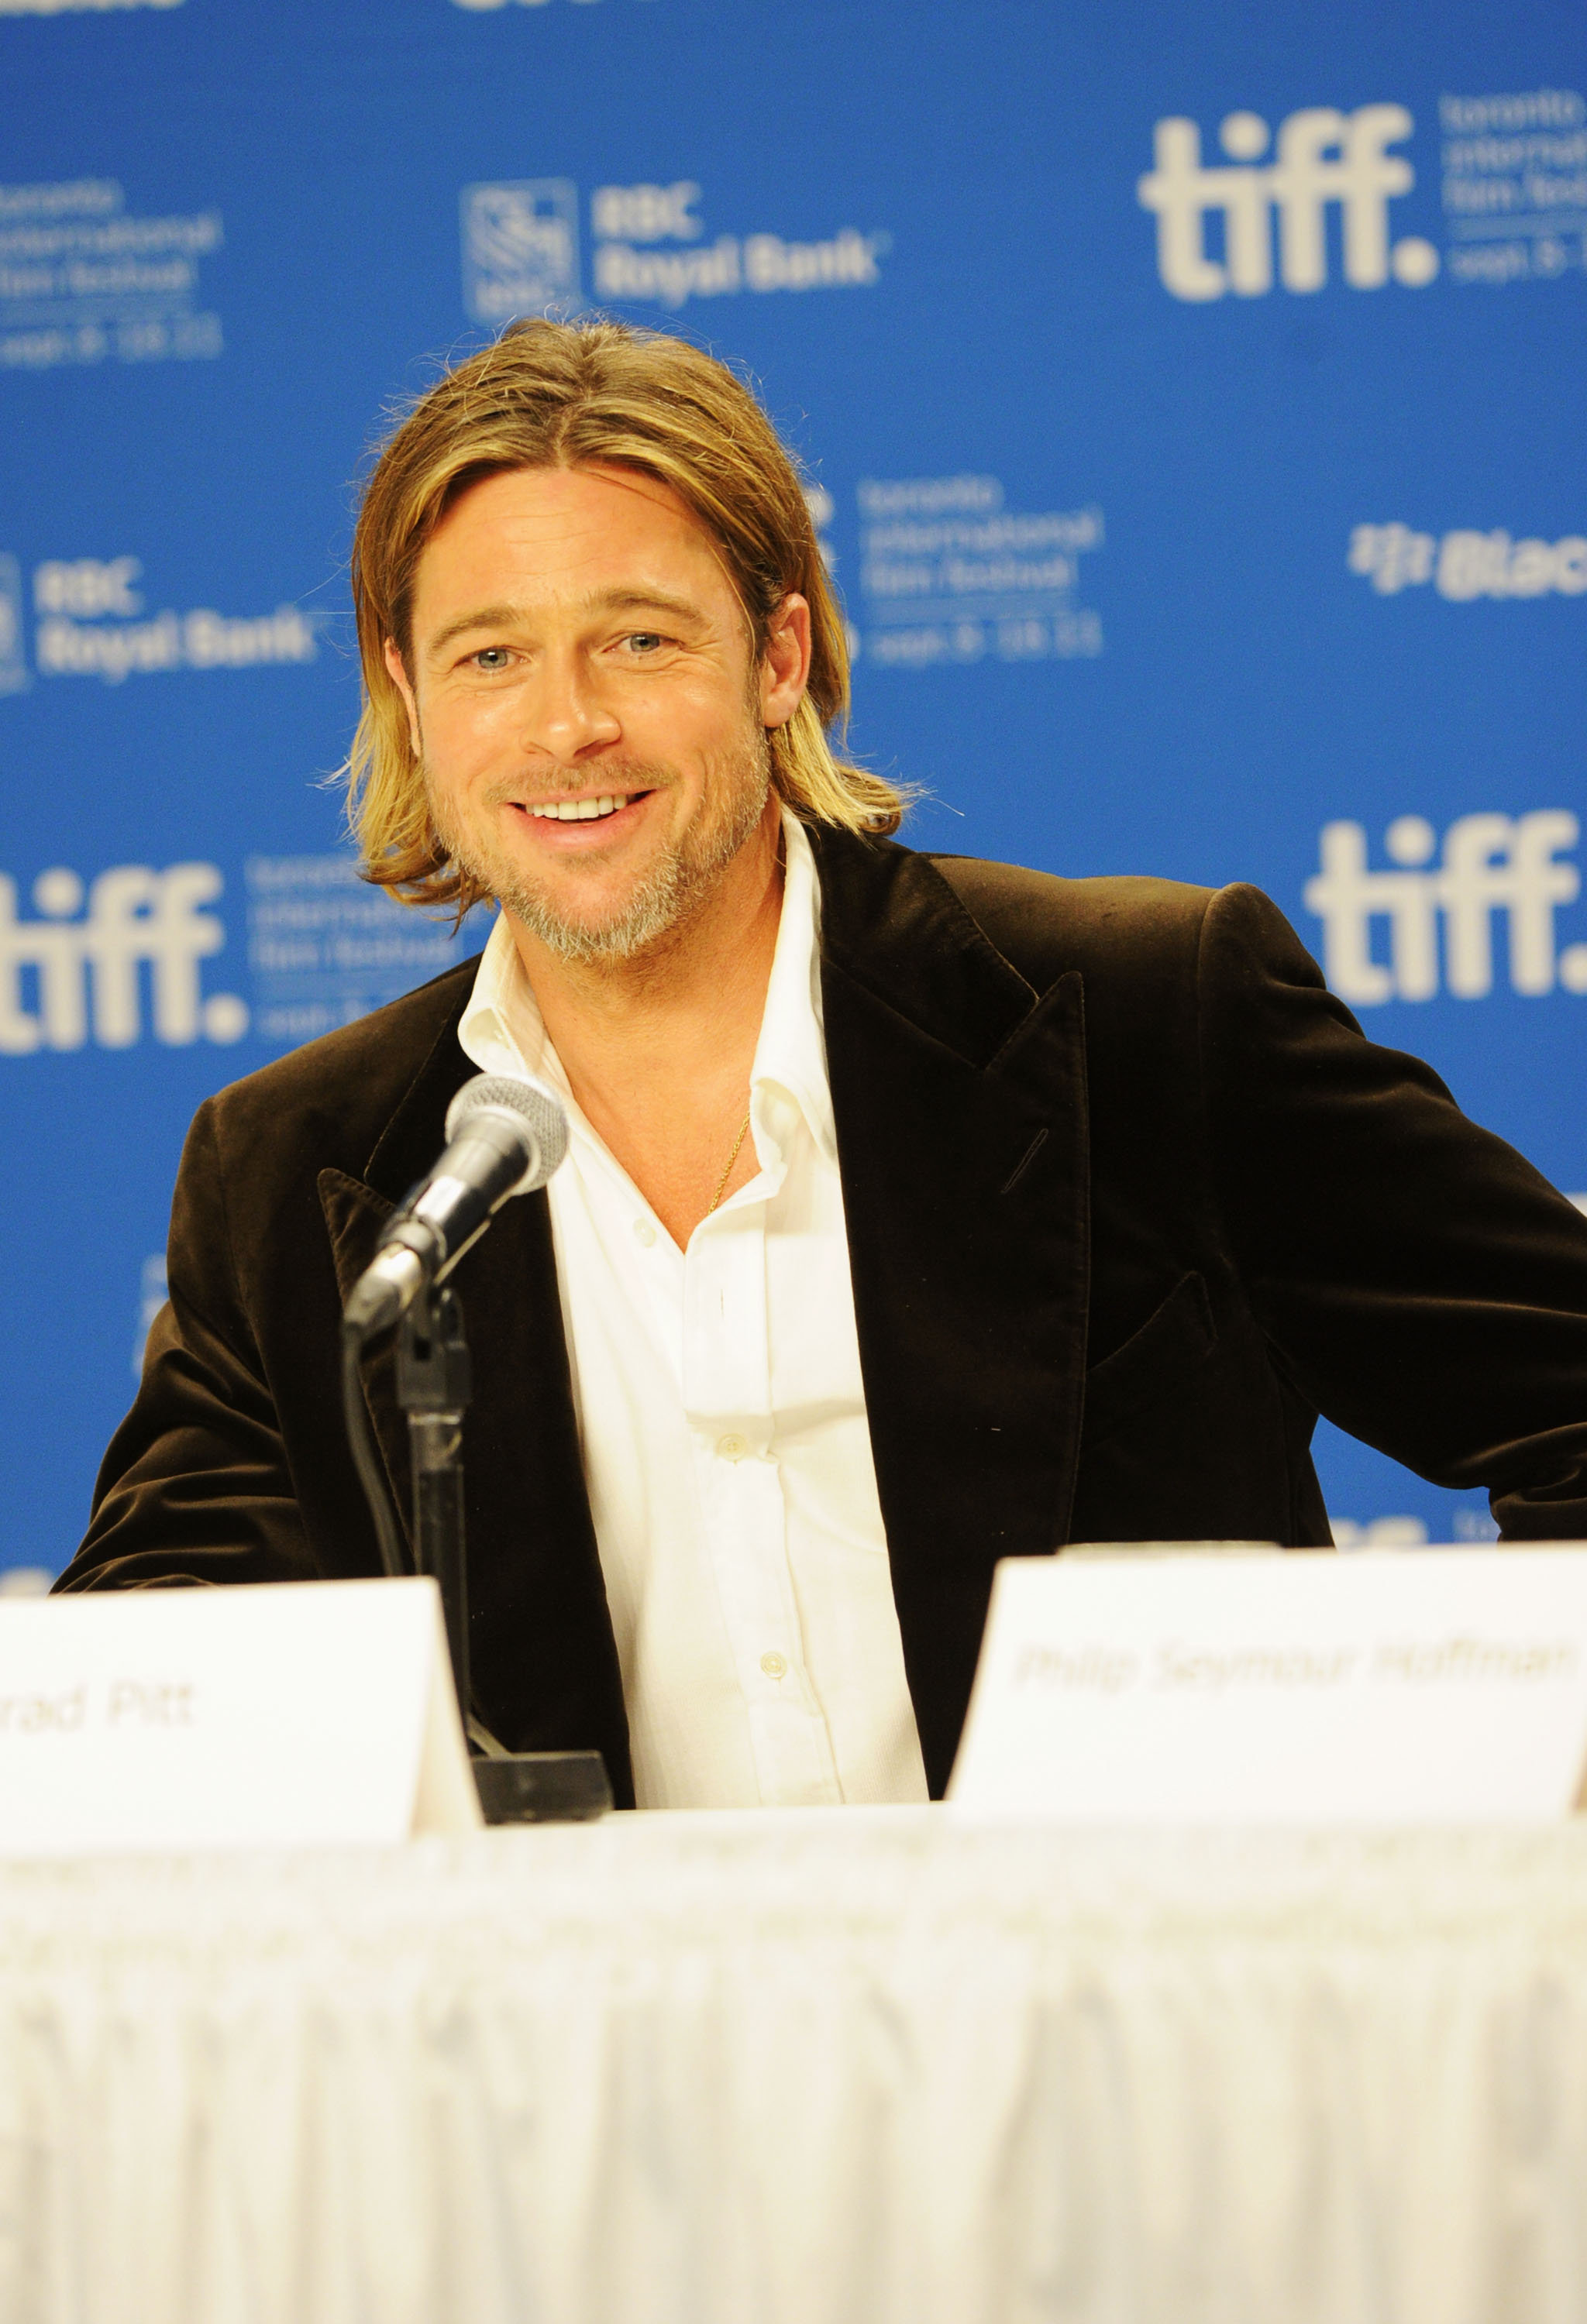 Brad Pitt answered questions about Moneyball.